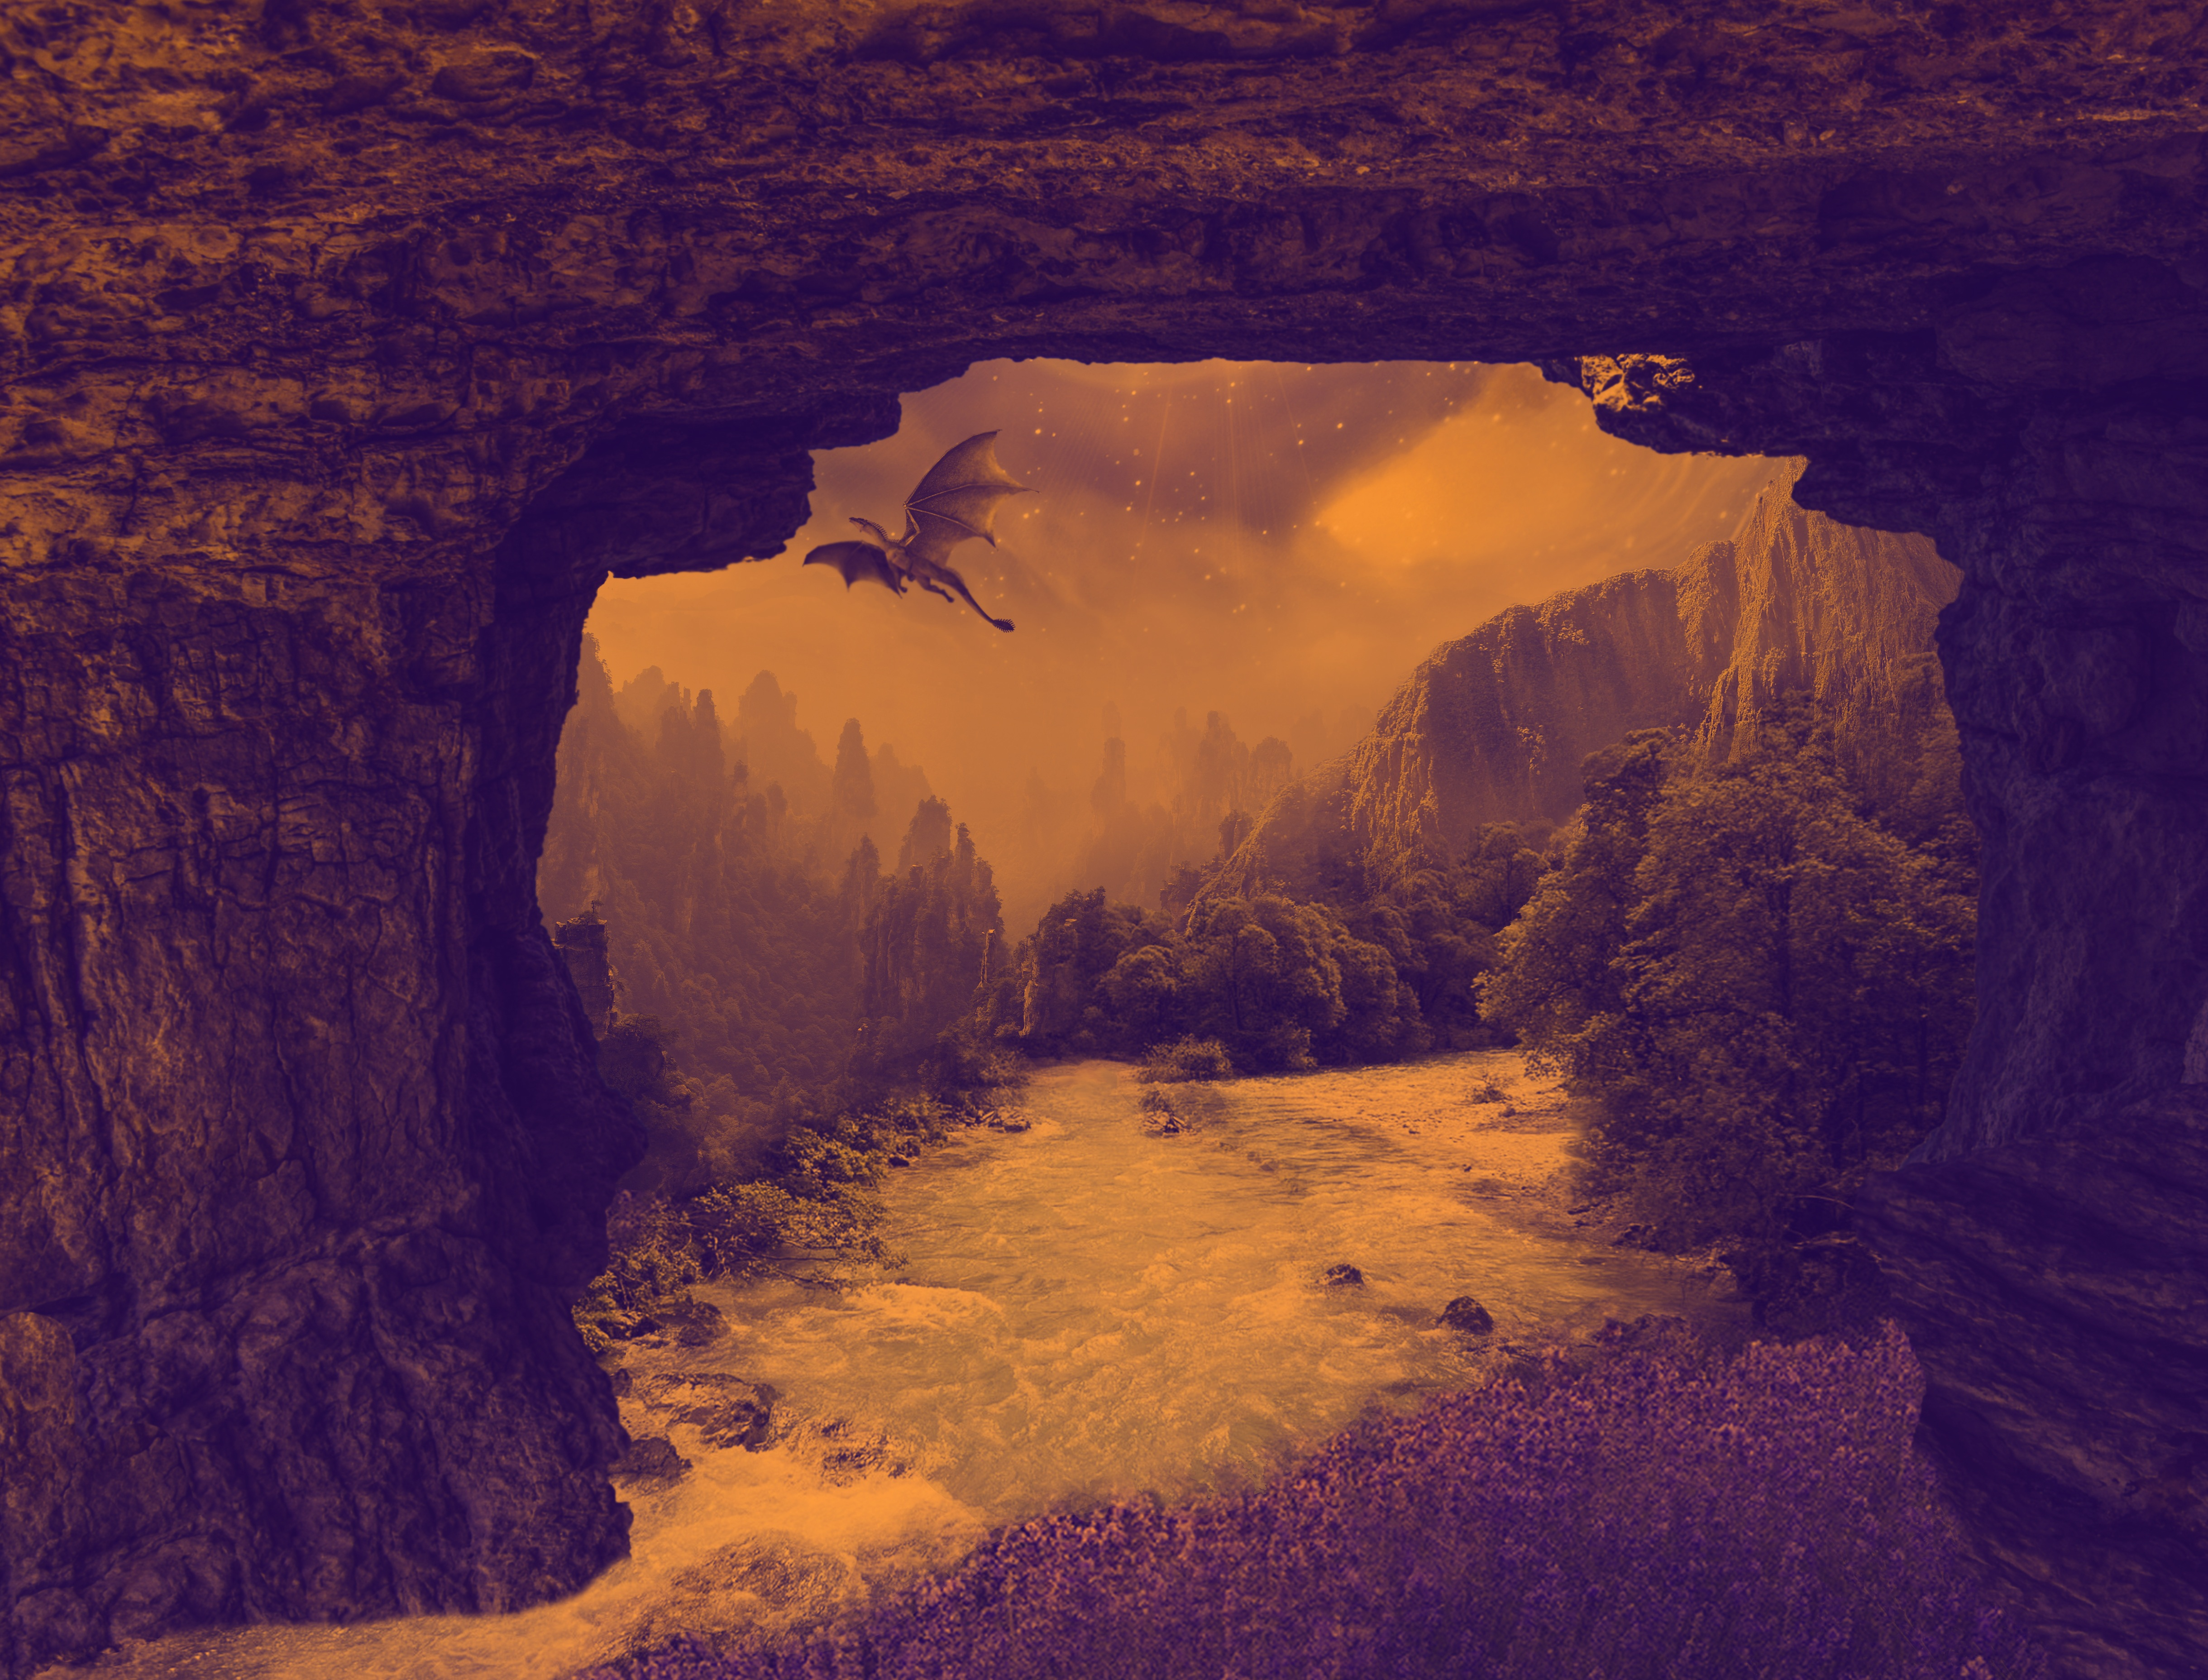 91105 download wallpaper Dragon, Mystical, Mystic, Fantasy, Waterfall, Rivers, Rocks screensavers and pictures for free